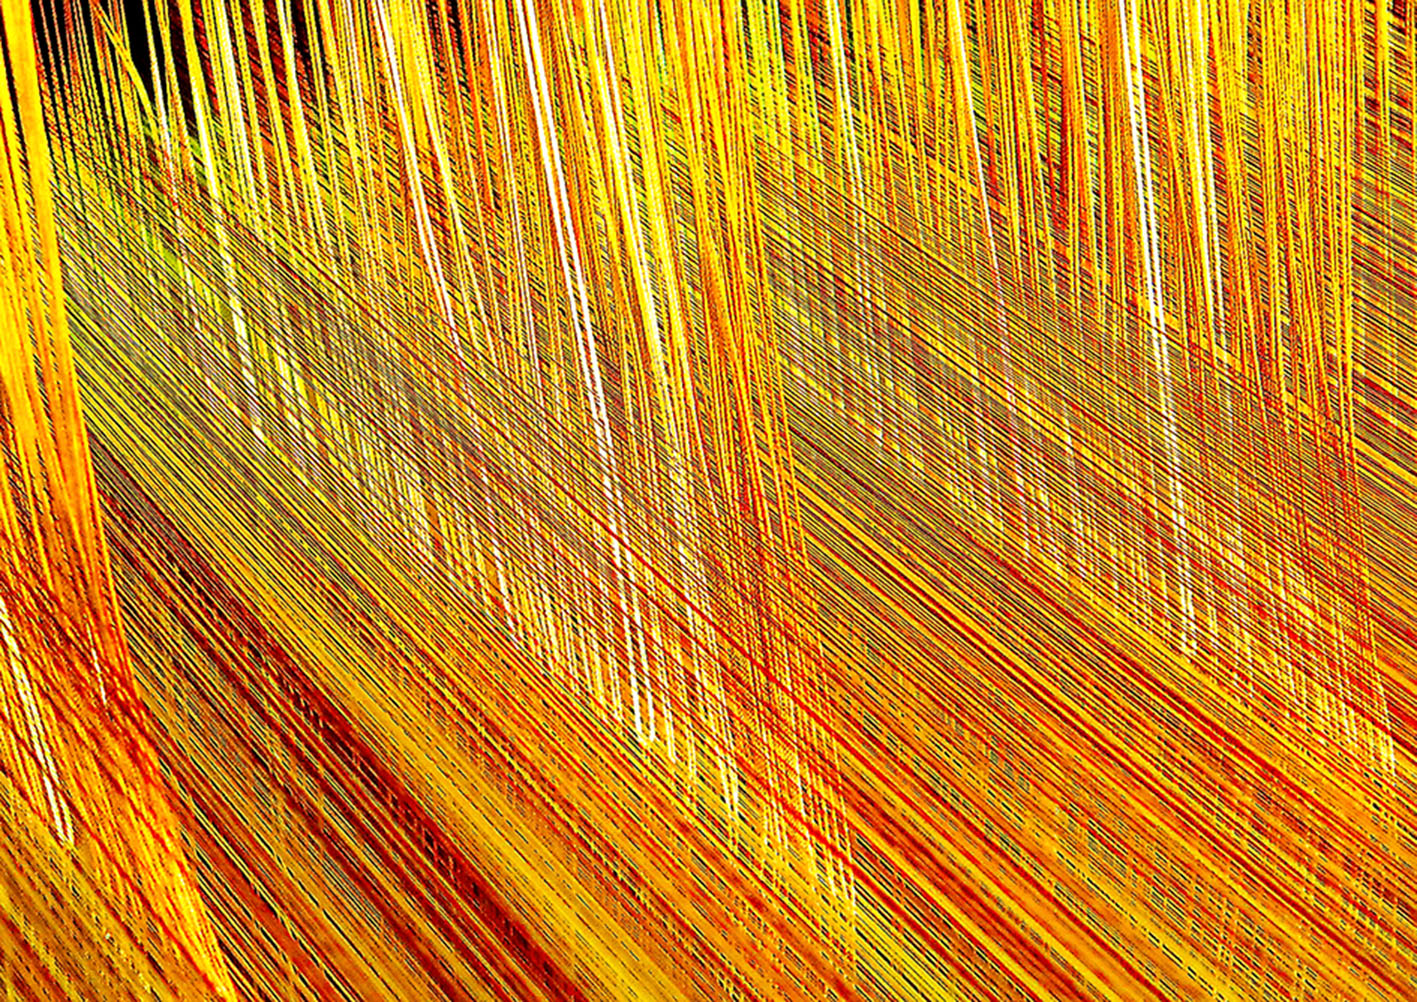 Spun Gold #2 copy